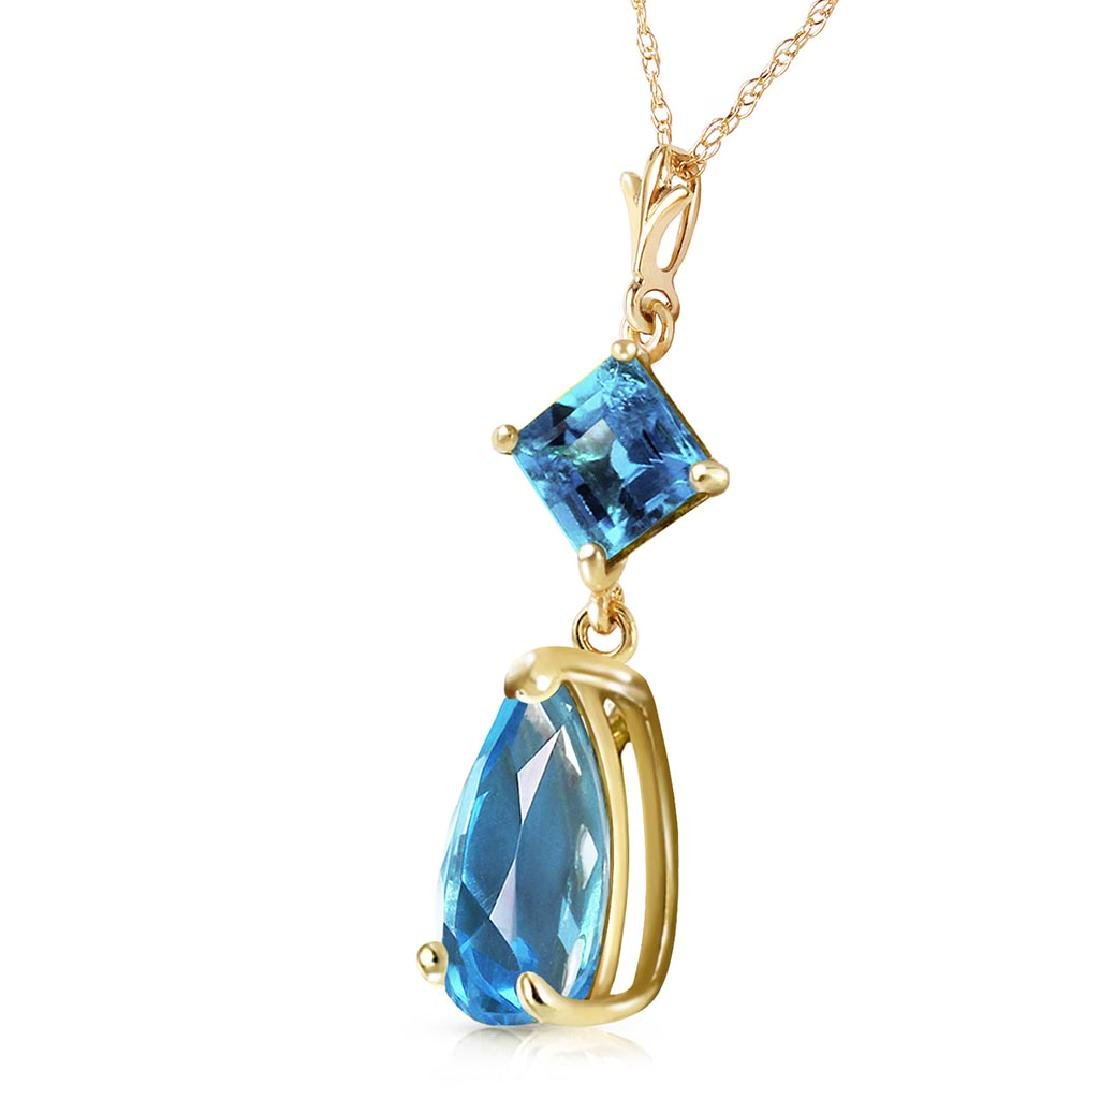 2 Carat 14K Solid Gold To Love Again Blue Topaz Necklac - 2